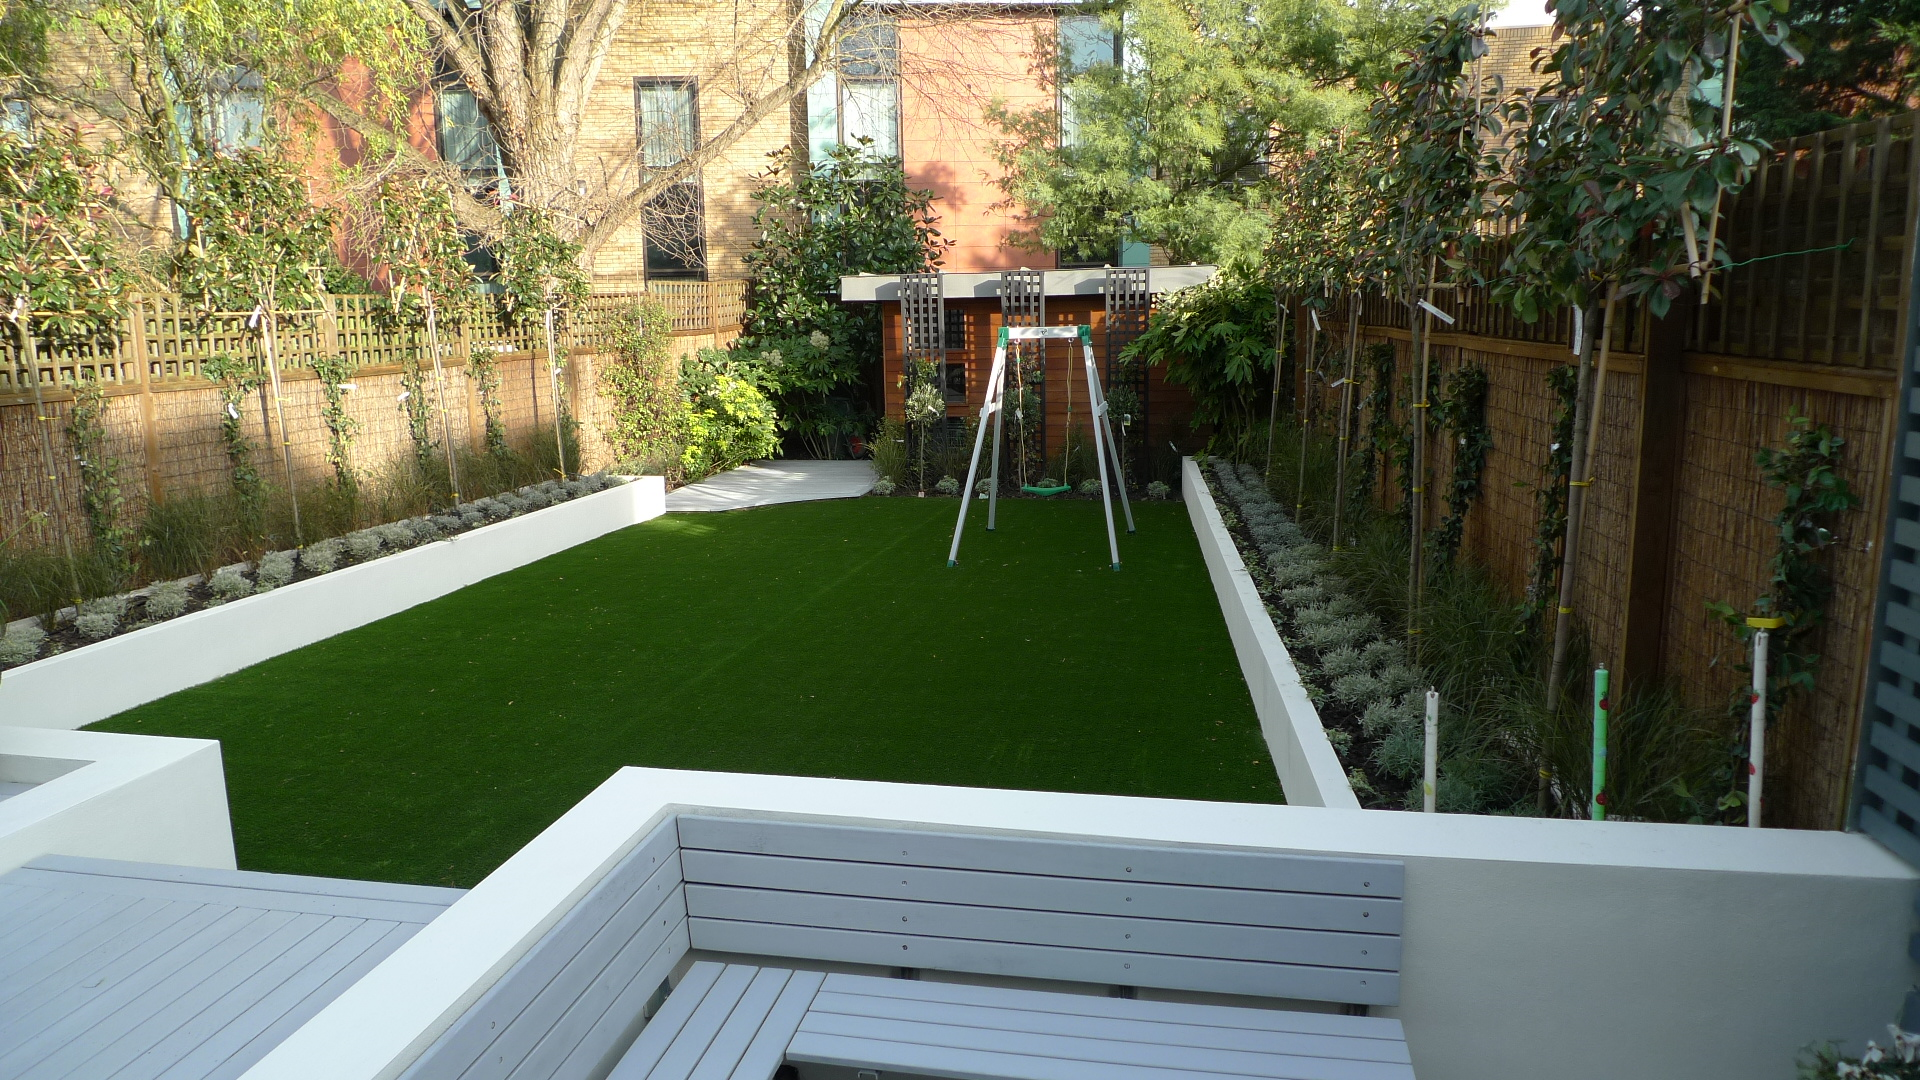 Modern garden design ideas london london garden design for Large garden design ideas